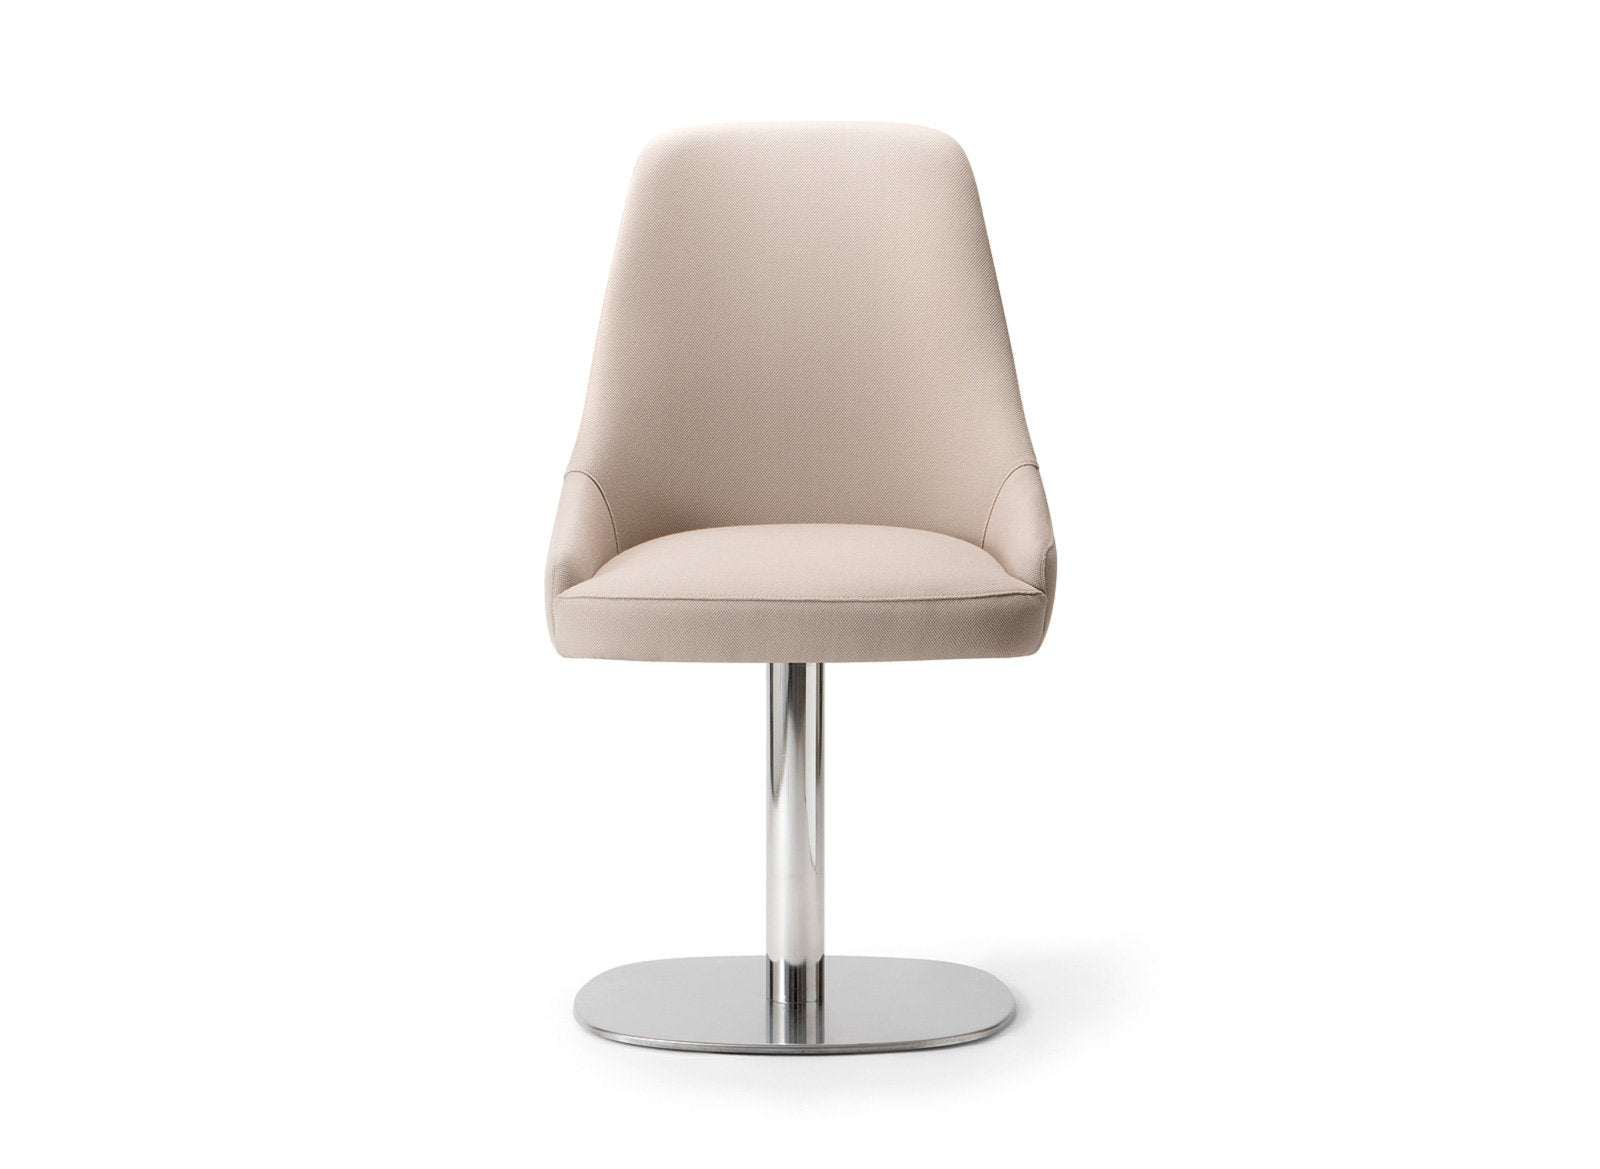 Adima 01 Side Chair c/w Swivel Base-Torre-Contract Furniture Store